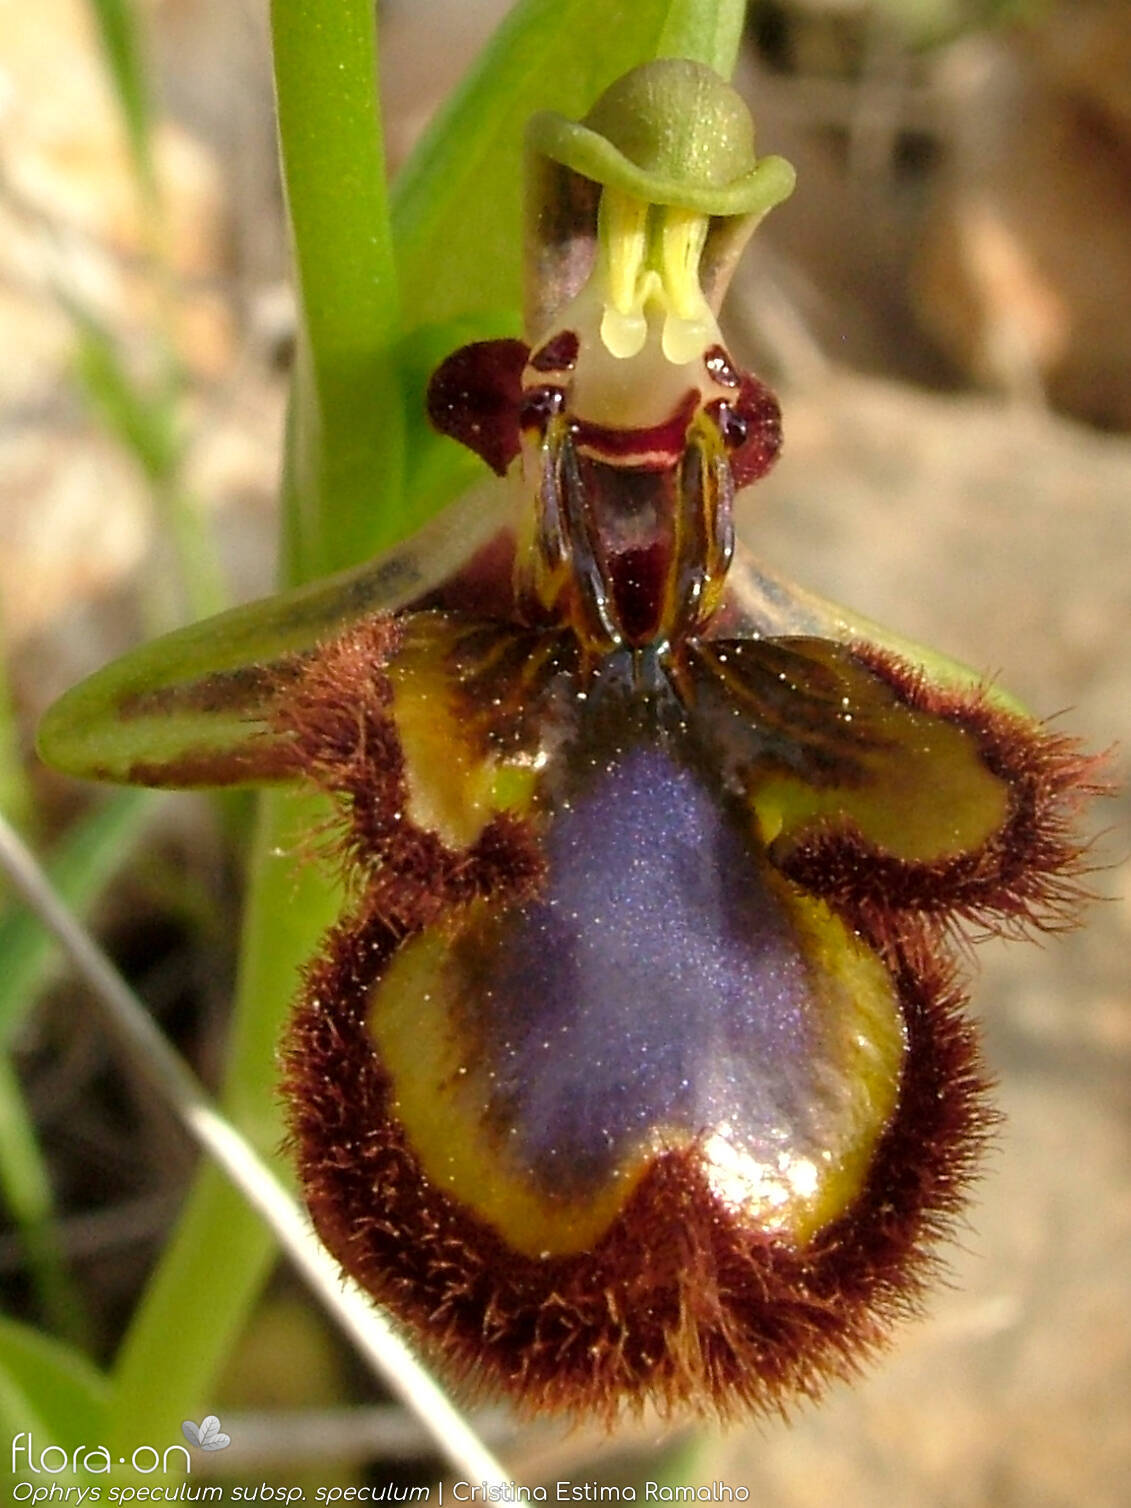 Ophrys speculum - Flor (close-up) | Cristina Estima Ramalho; CC BY-NC 4.0